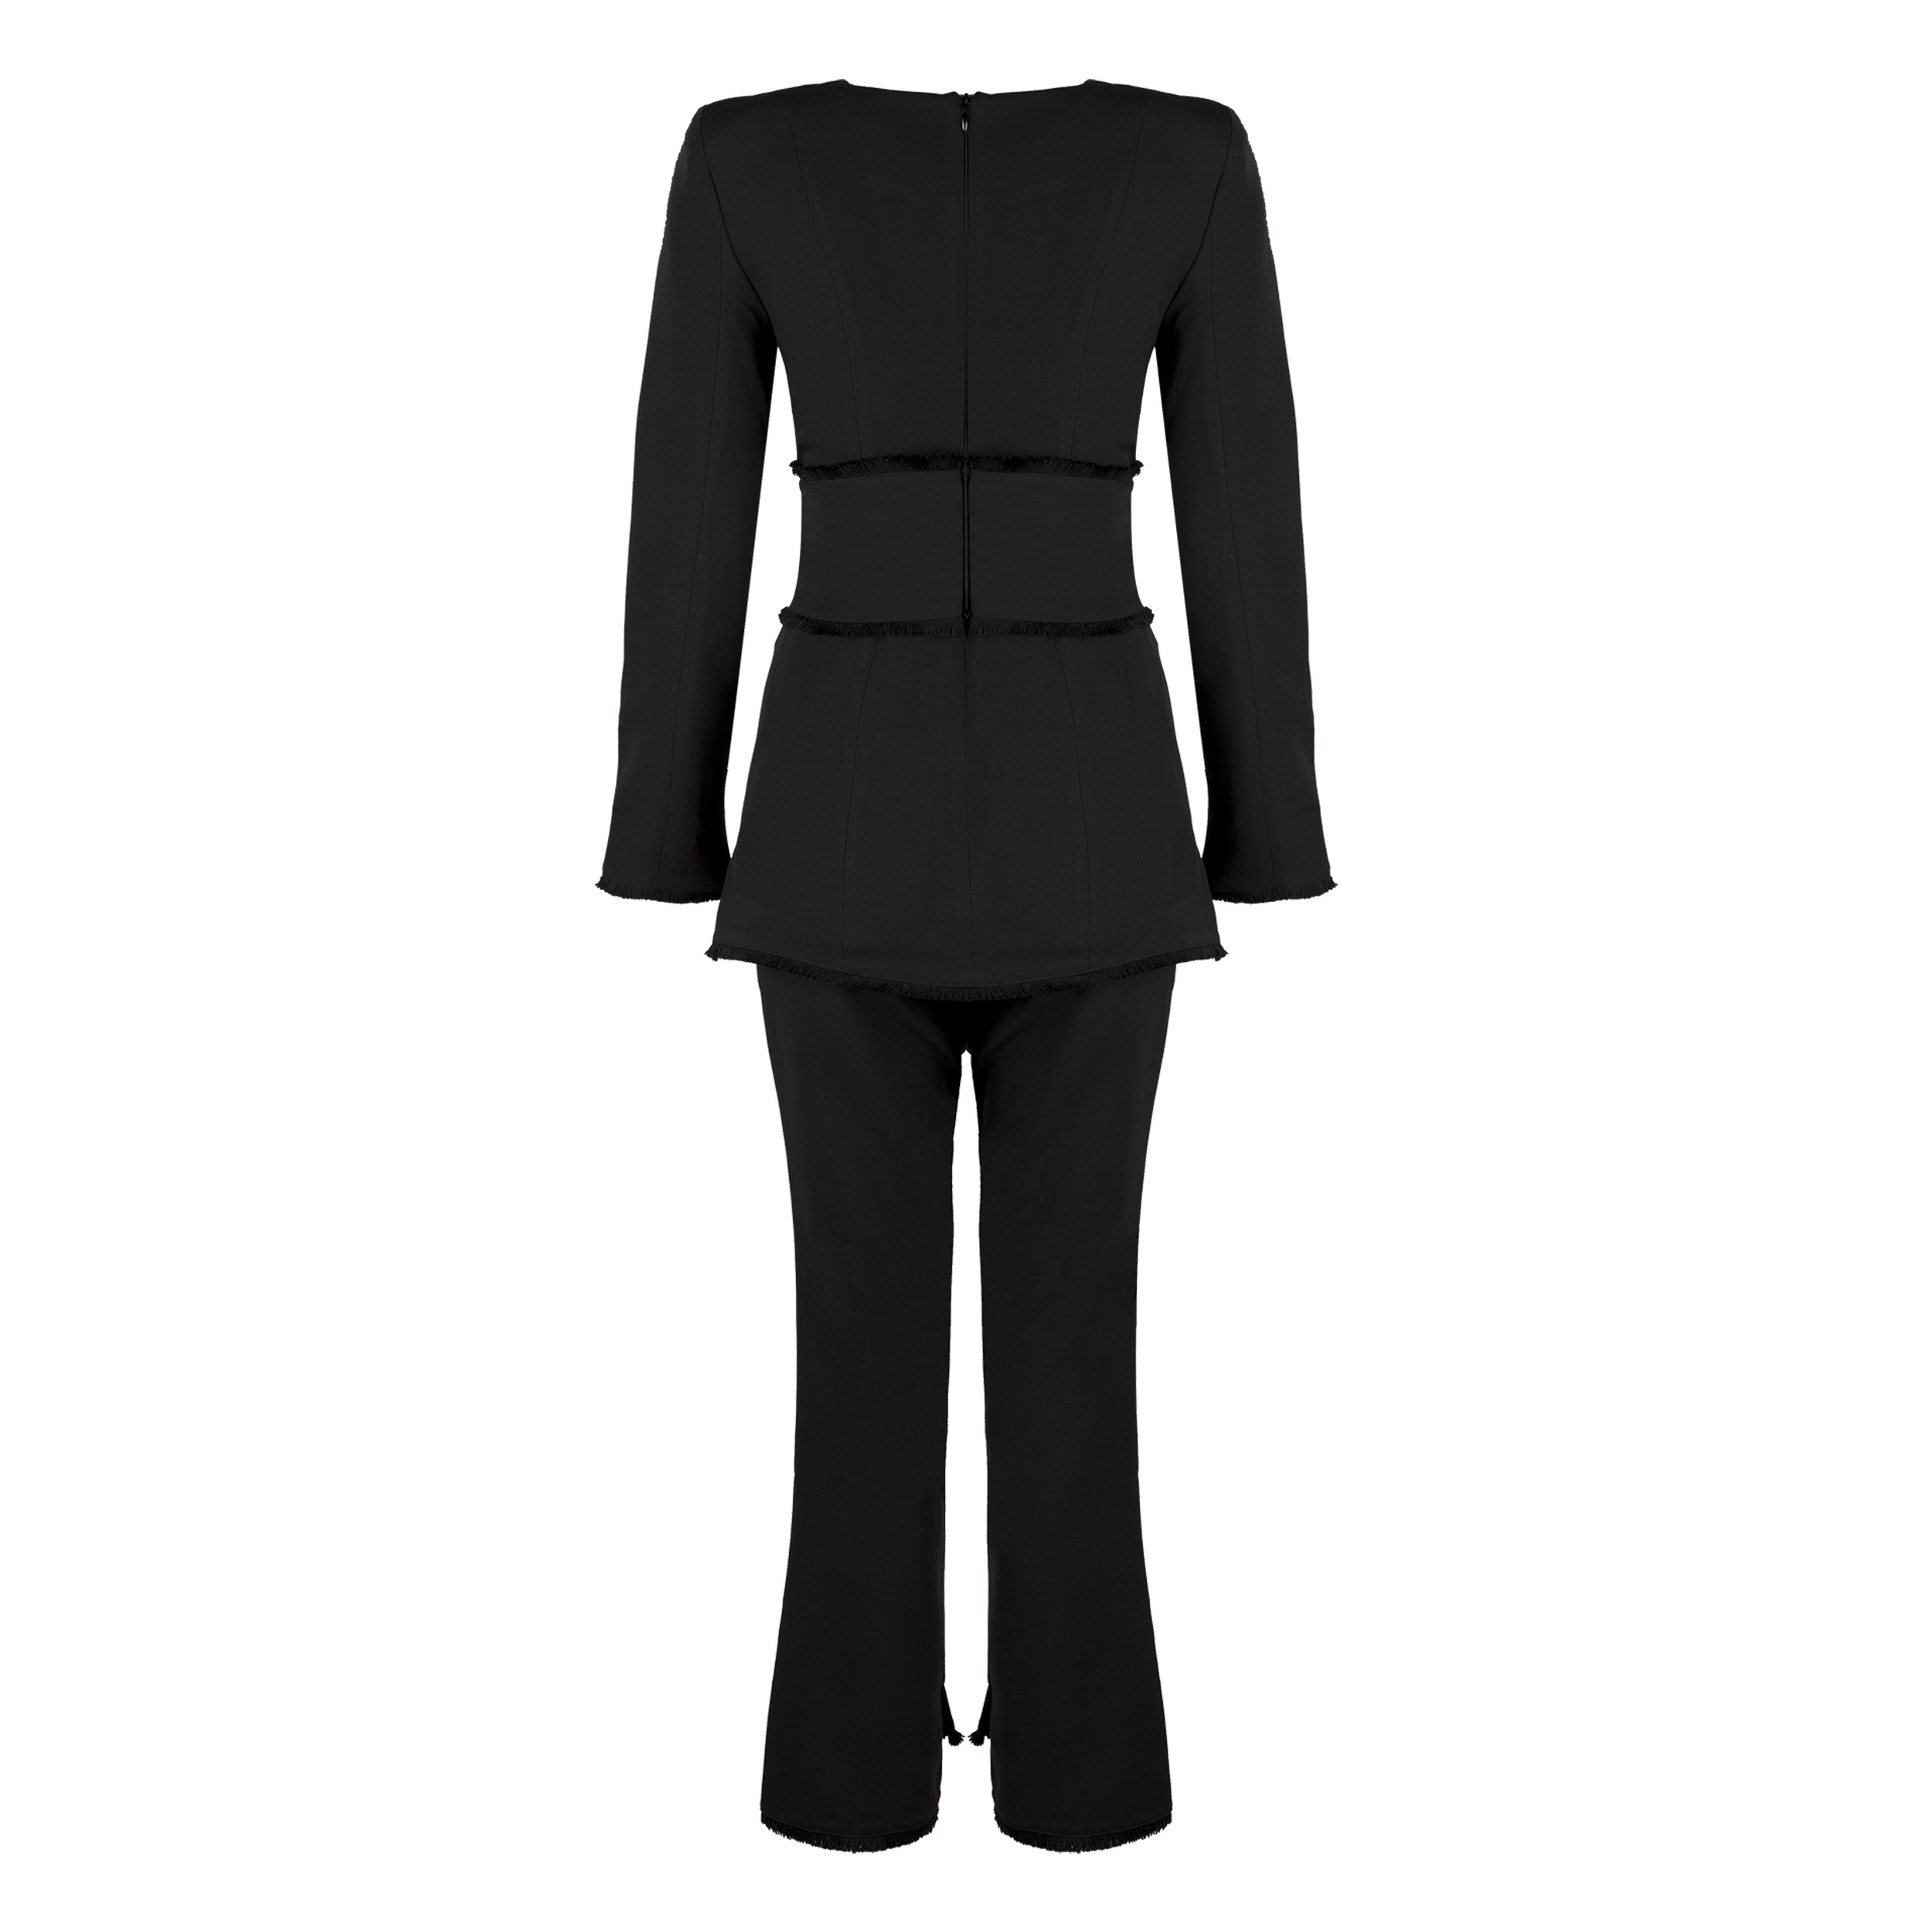 Black Round Neck Long Sleeve 2 Piece Fashion Outfit HB5295-Black